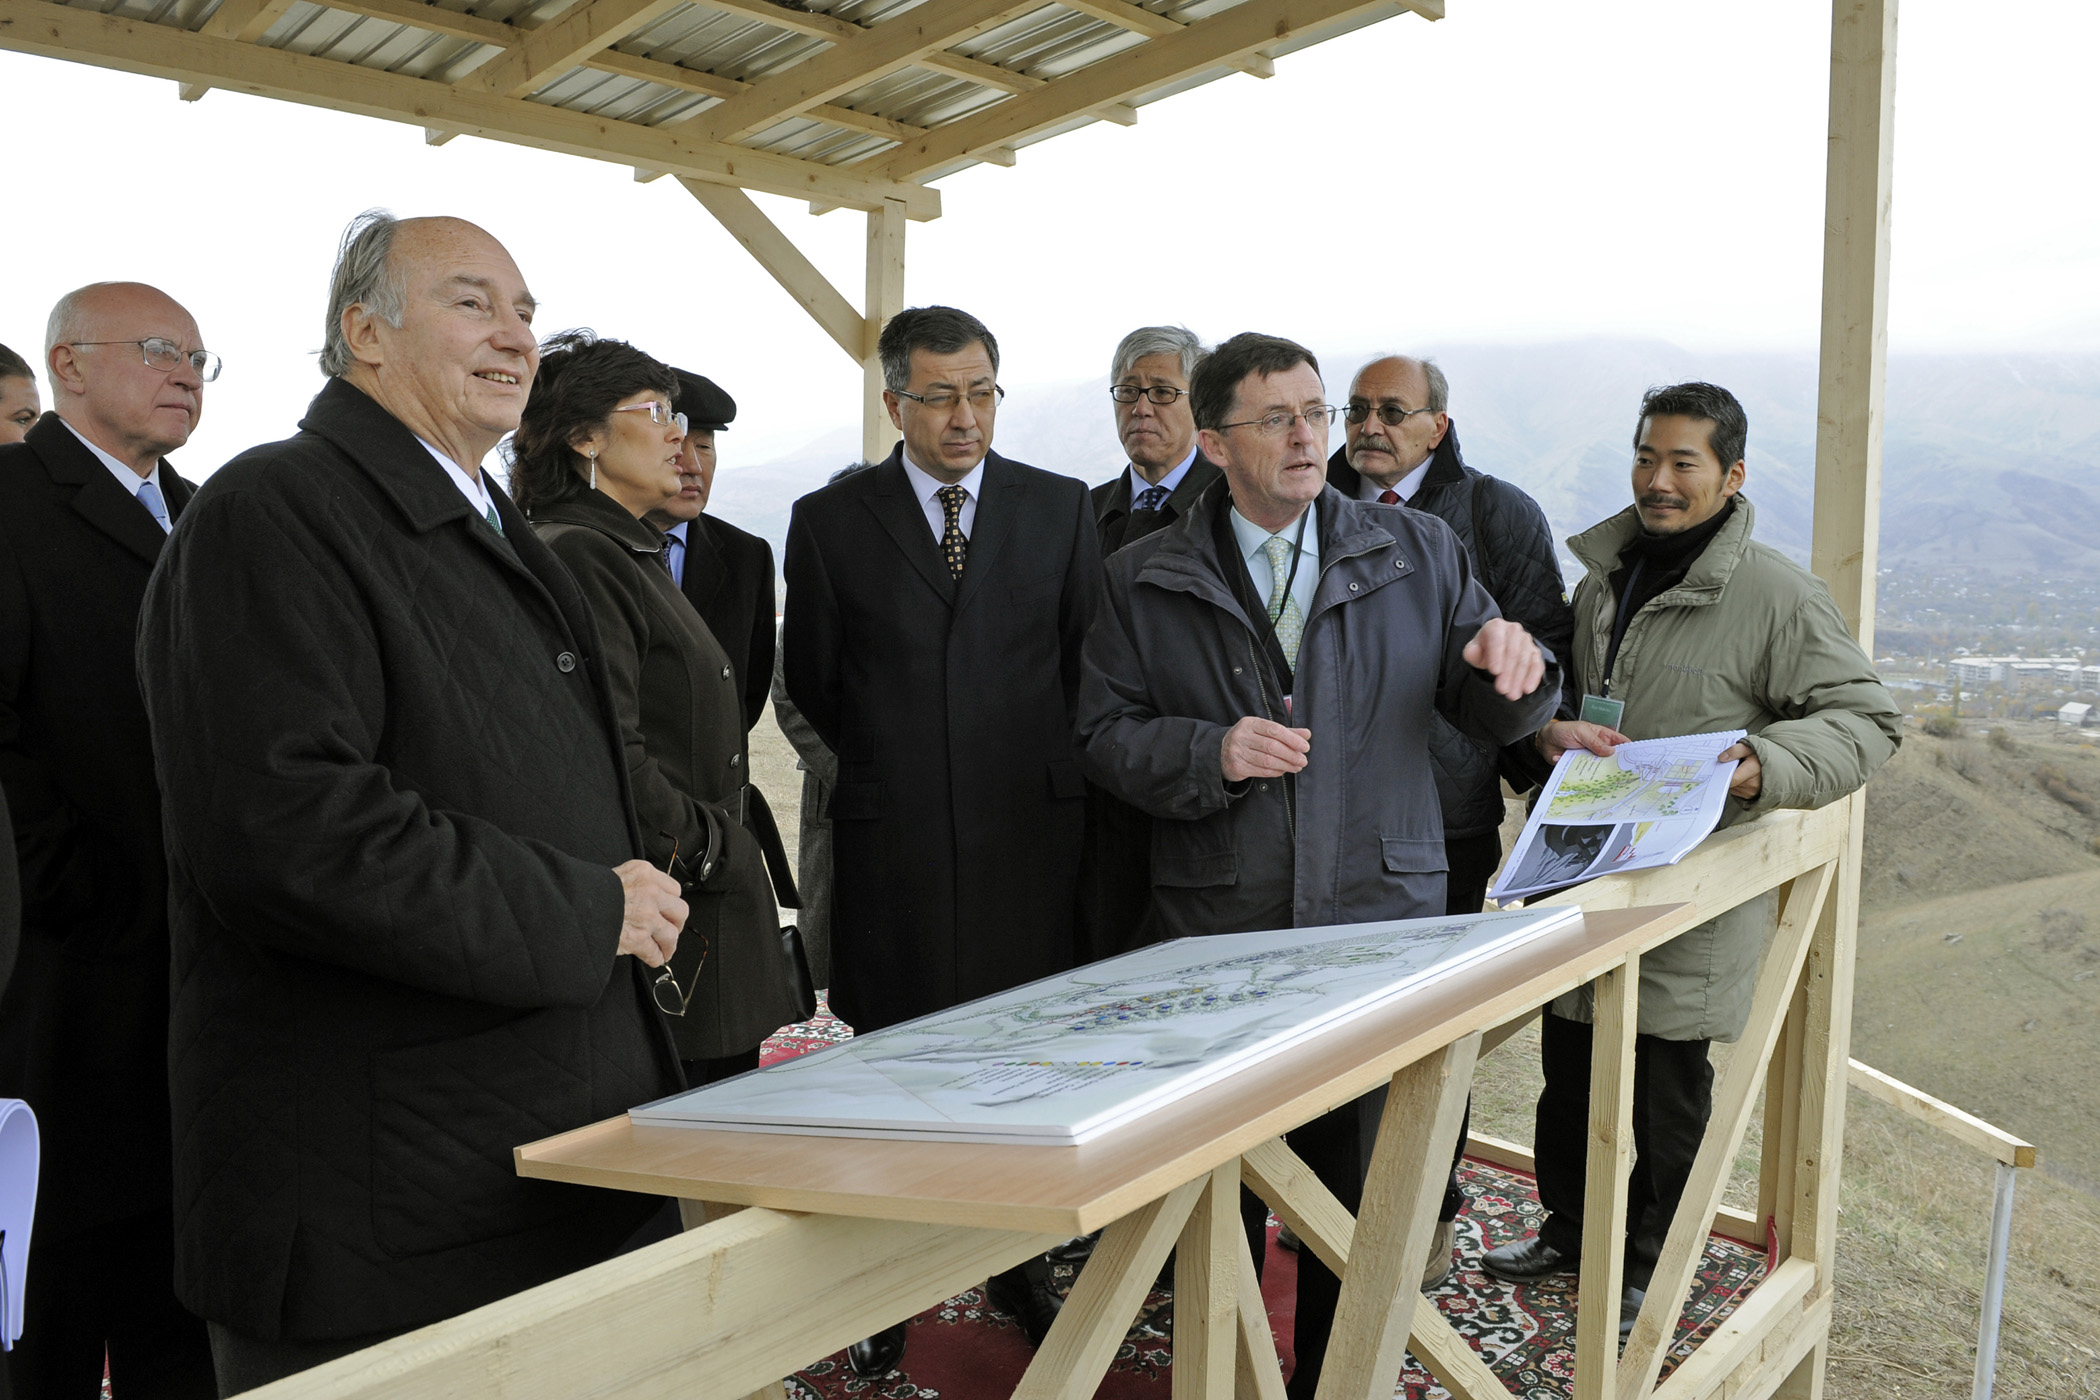 Mawlana Hazar Imam, Education Minister Tuimebayev, the Akim Umbetovand of the Almaty Oblast, and Akim Busembinov of the Eskeldinski Rayon review plans at the site of the University of Central Asia's Kazakhstan campus. Photo: Gary Otte